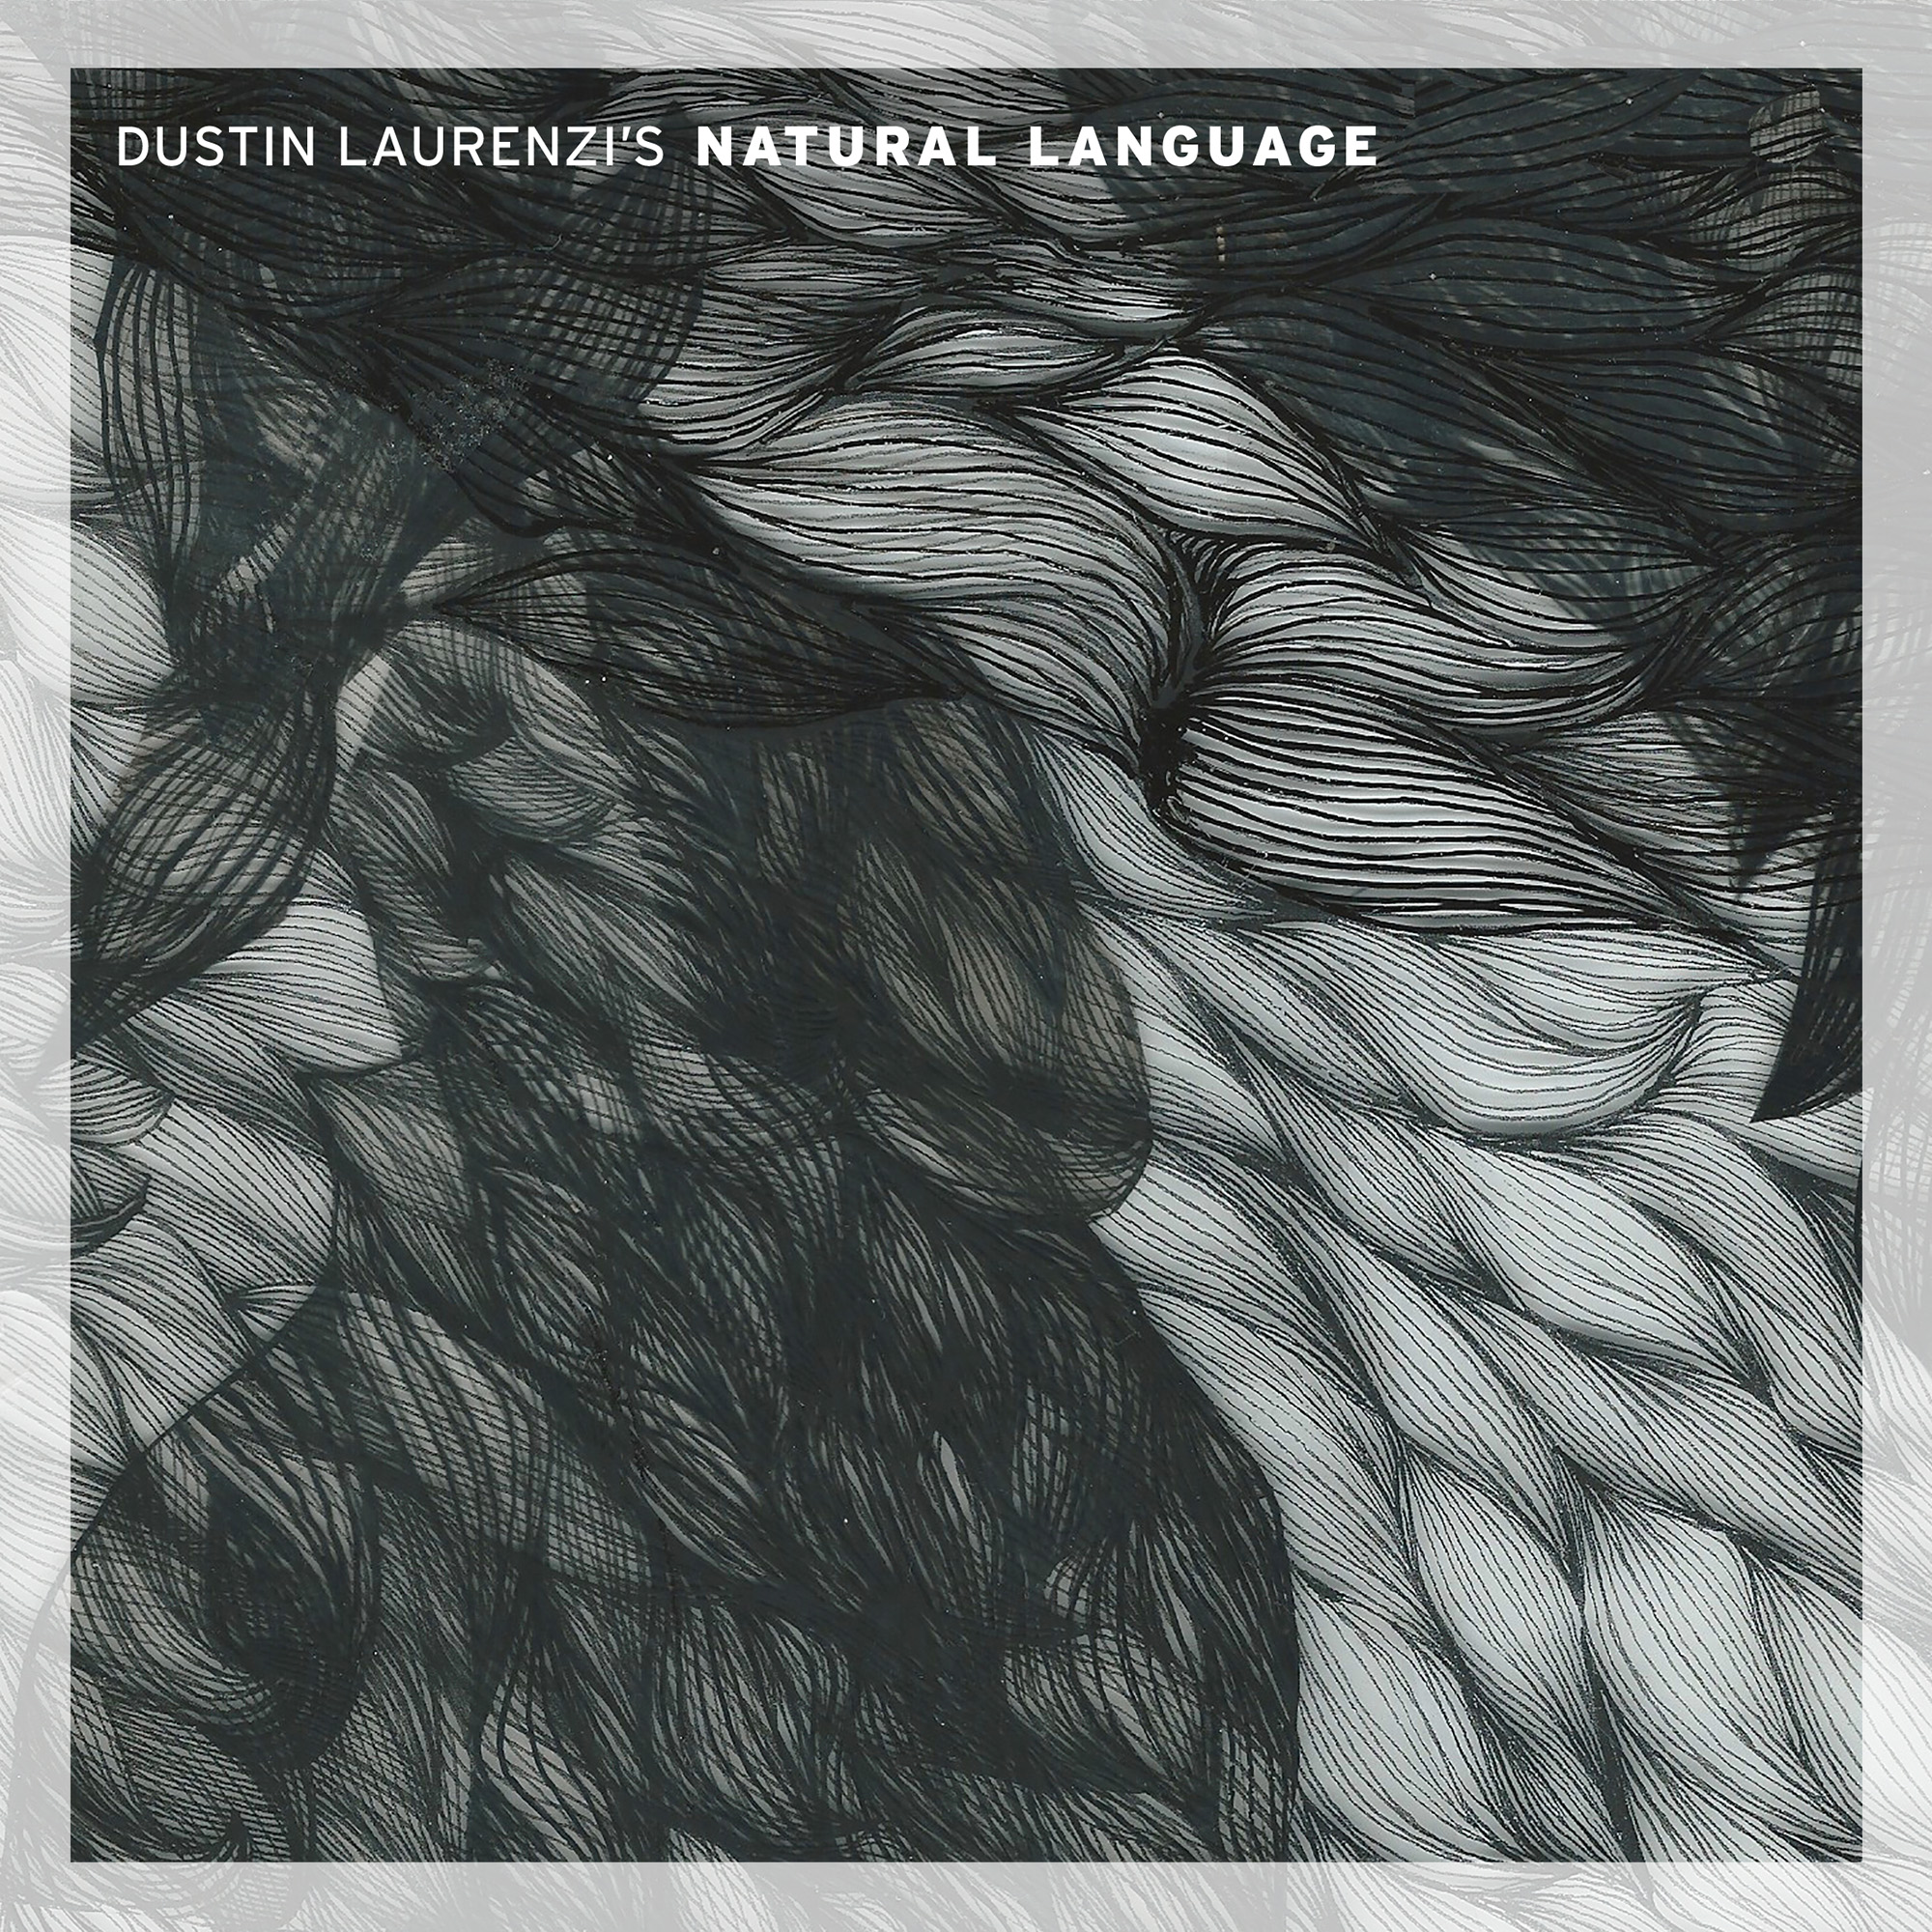 Dustin Laurenzi's Natural Language - S/T (2016)